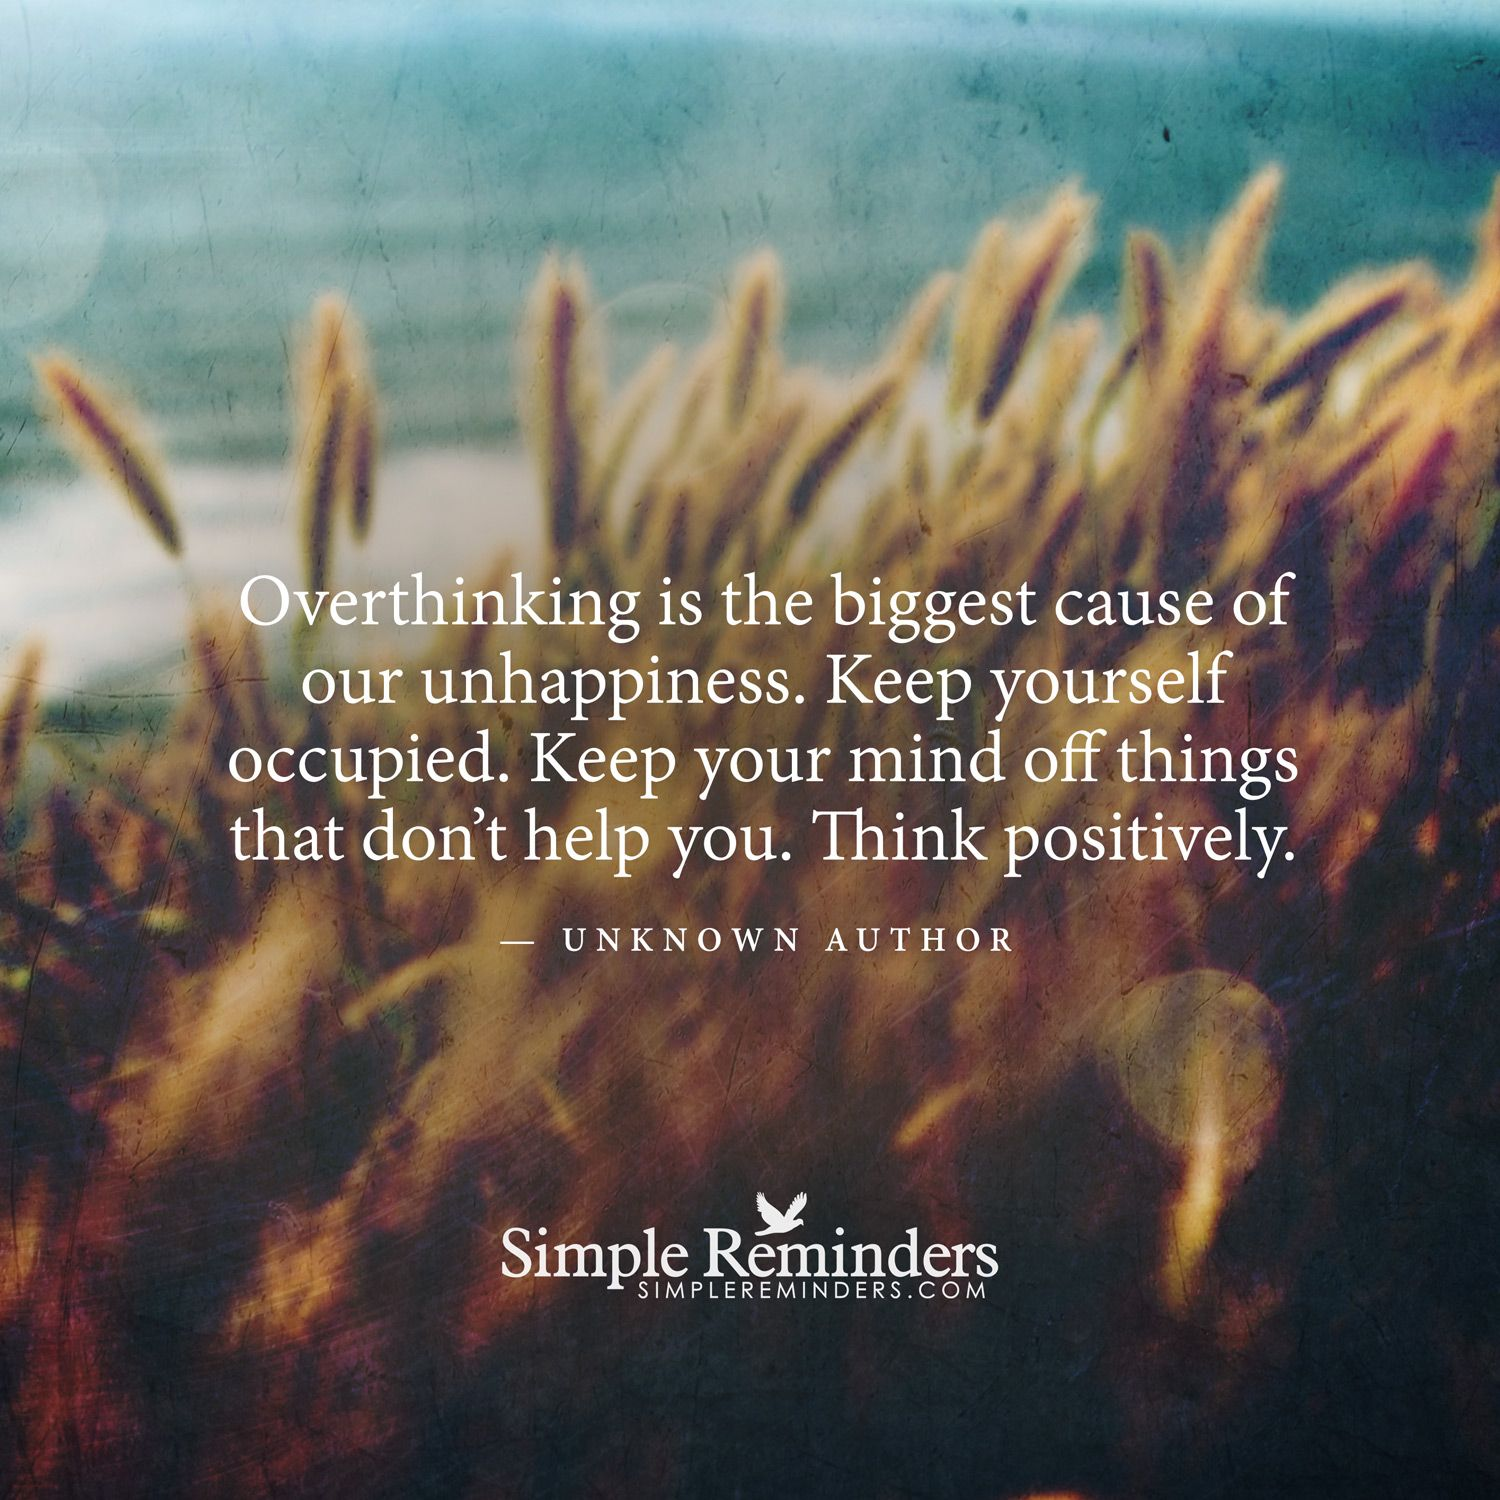 Quotes About Unhappiness: Overthinking Is The Biggest Cause Of Our Unhappiness. Keep